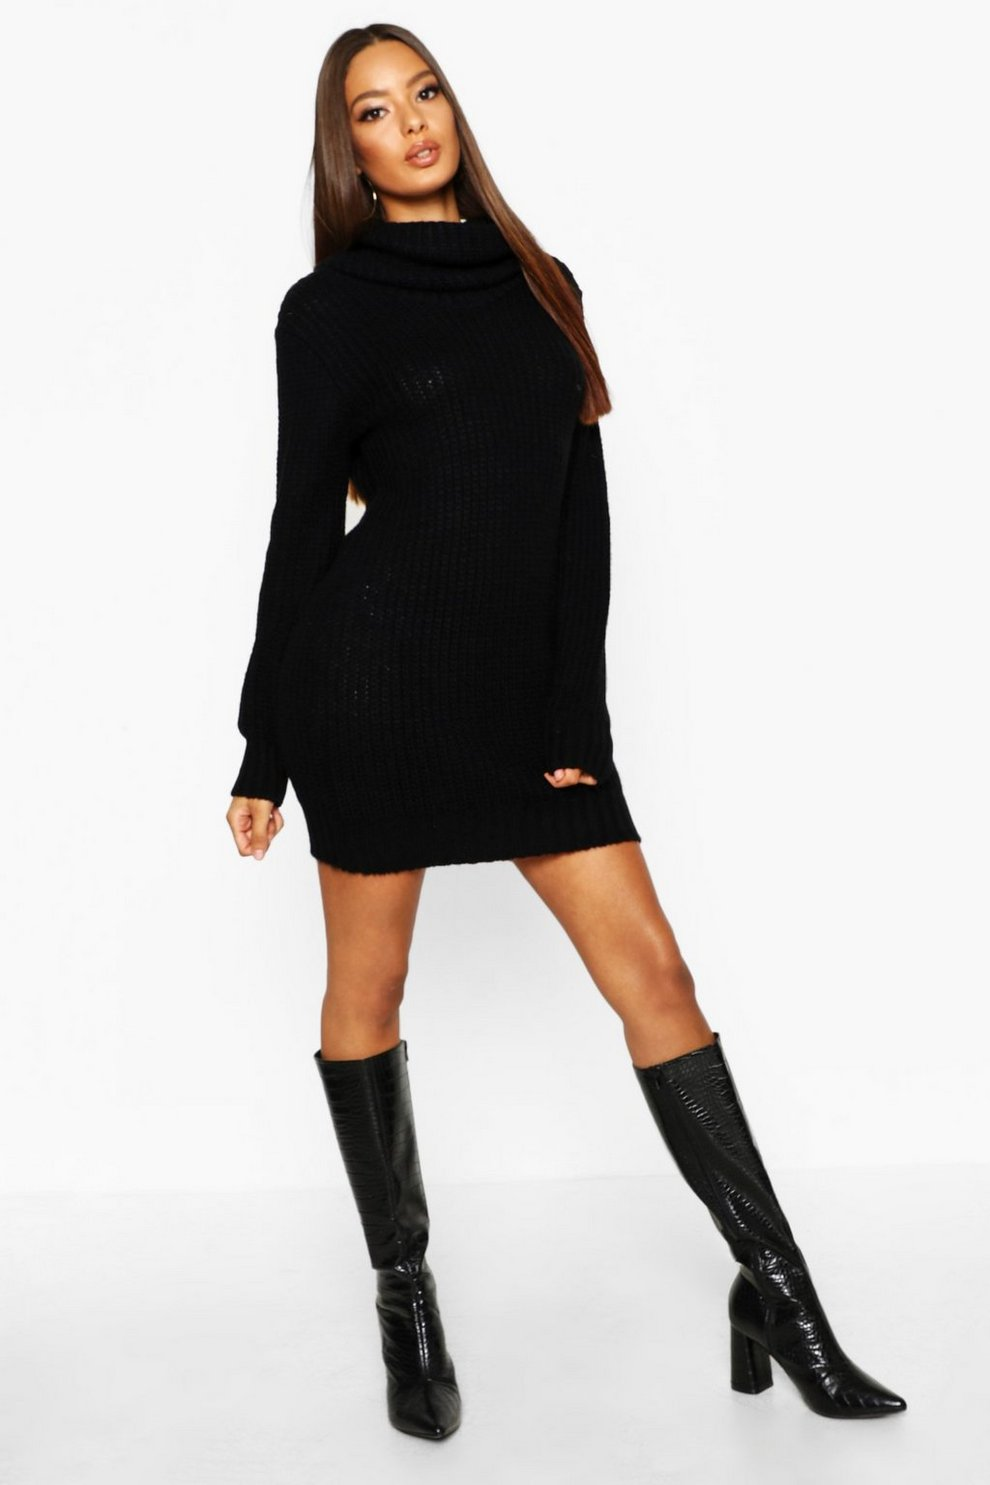 677f14a39ed Womens Black Oversized Soft Knit Cowl Neck Jumper Dress